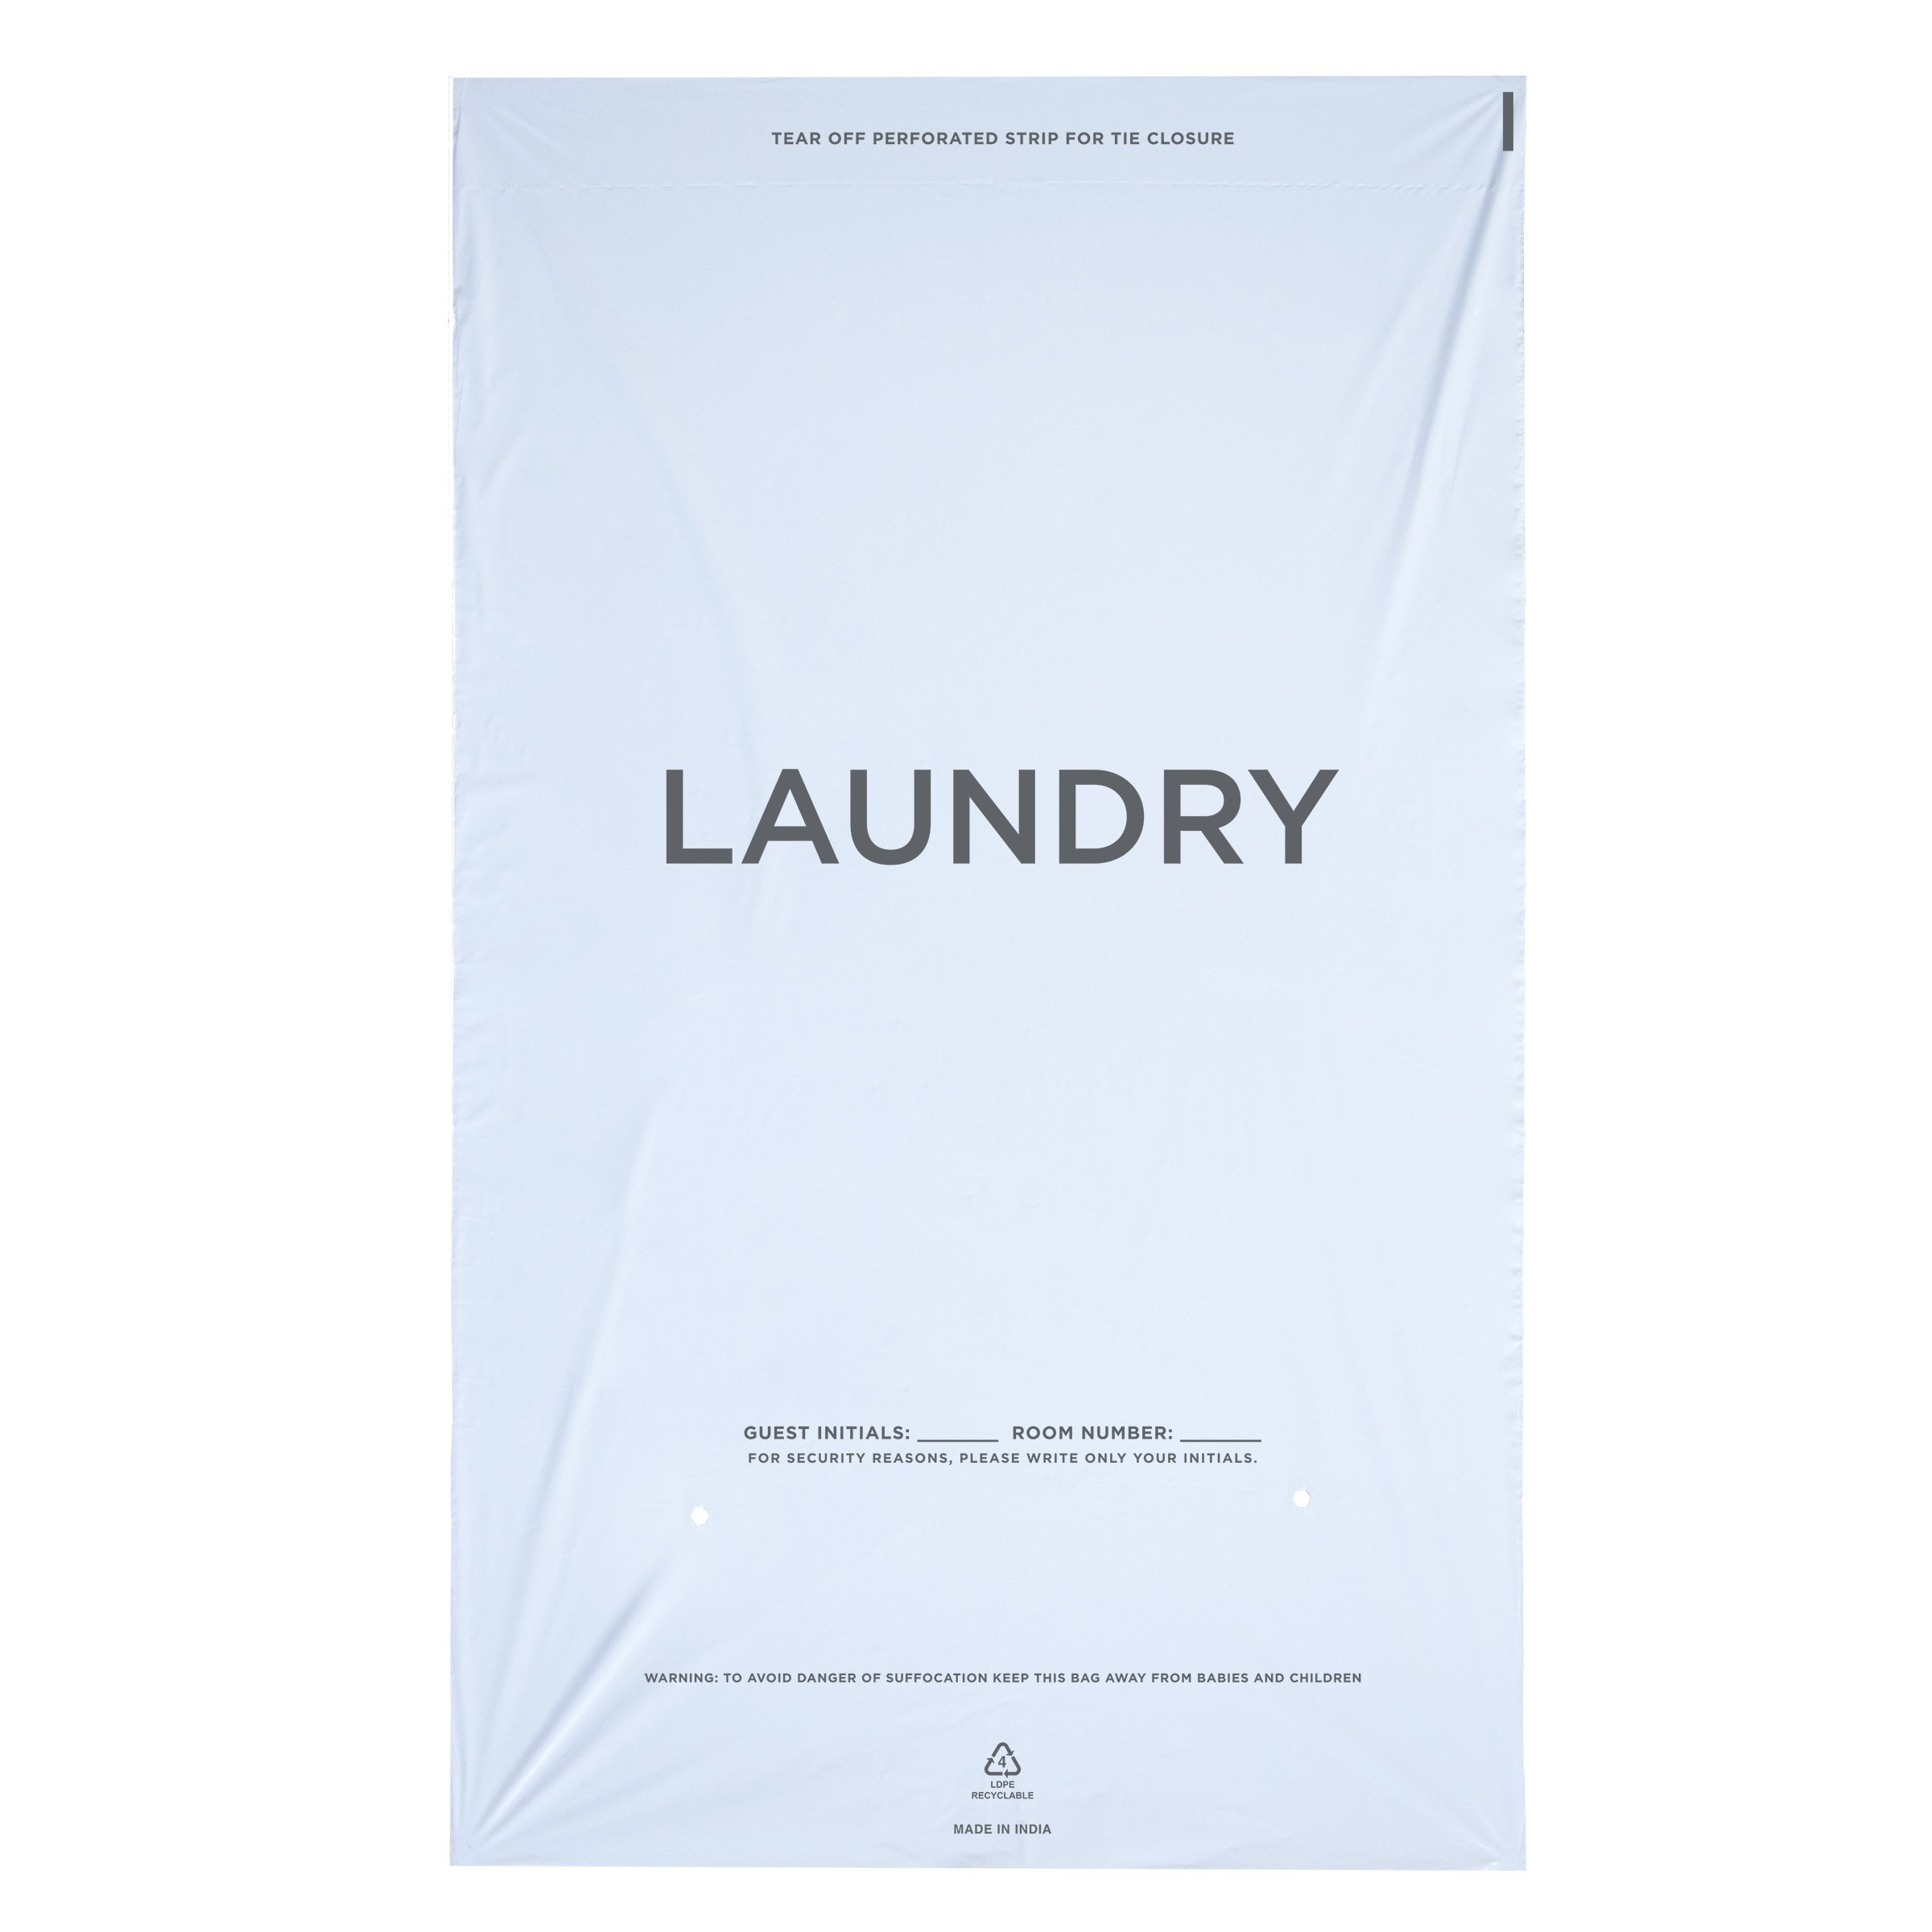 WELCOME Laundry Bags Hospitality - 14 X 24 Hotel Laundry Bags - Tear Tape Tie Closure White Plastic (Case of 1000)